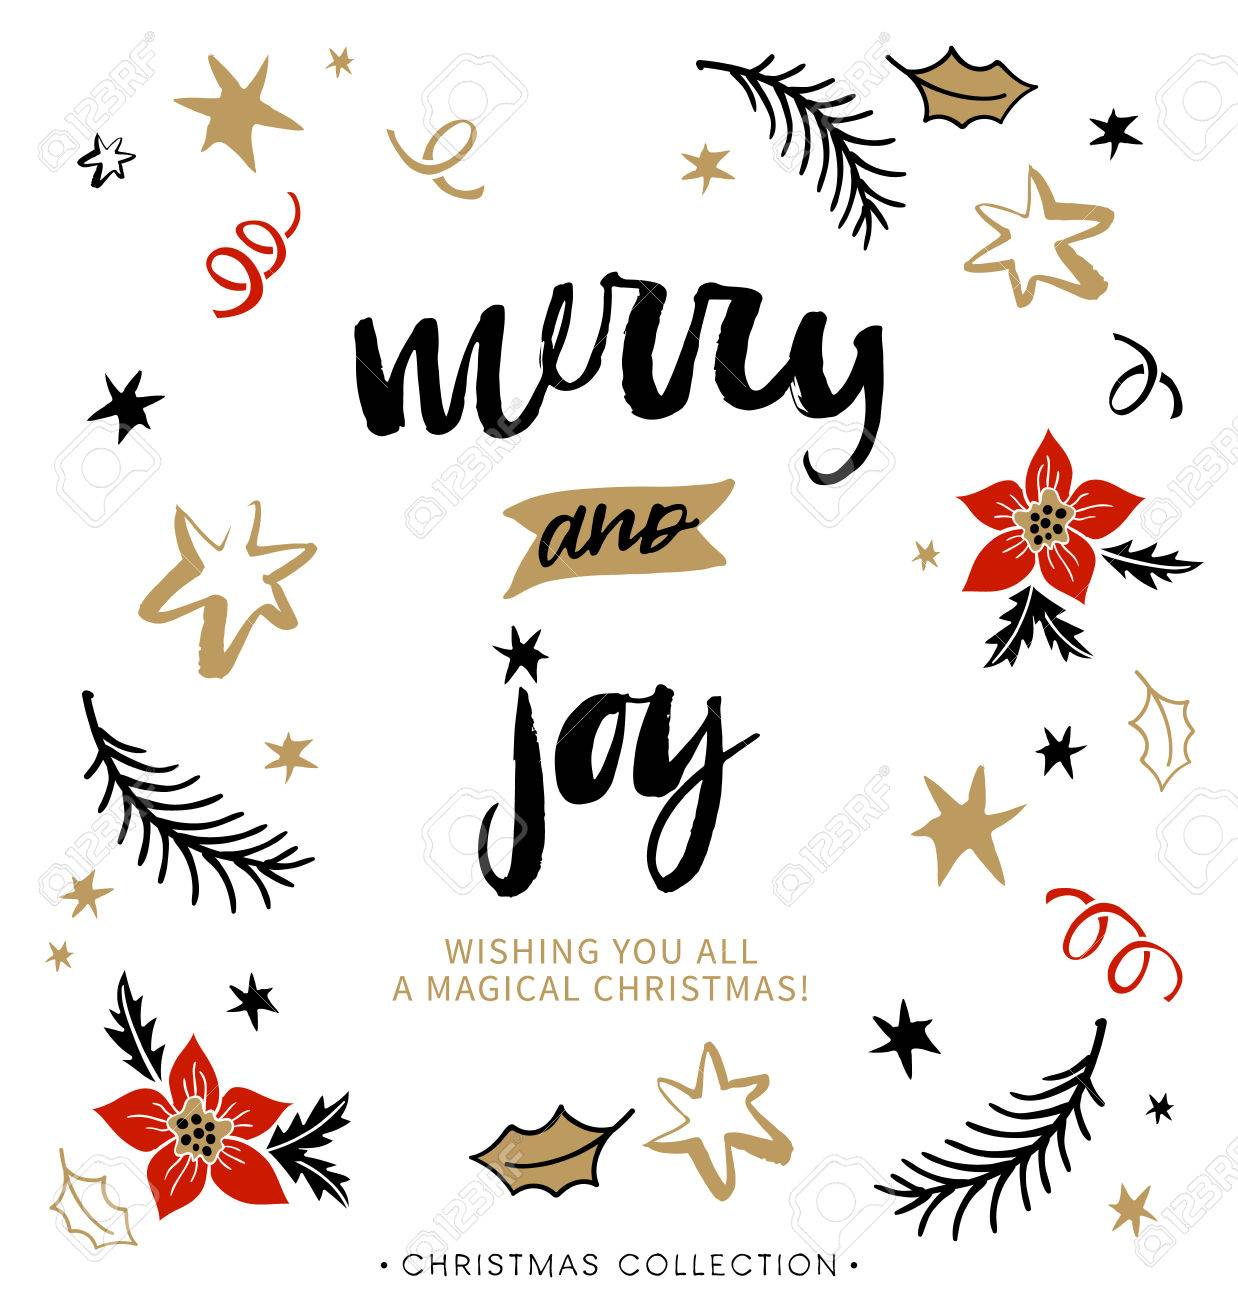 Merry And Joy. Christmas Greeting Card With Calligraphy. Handwritten ...